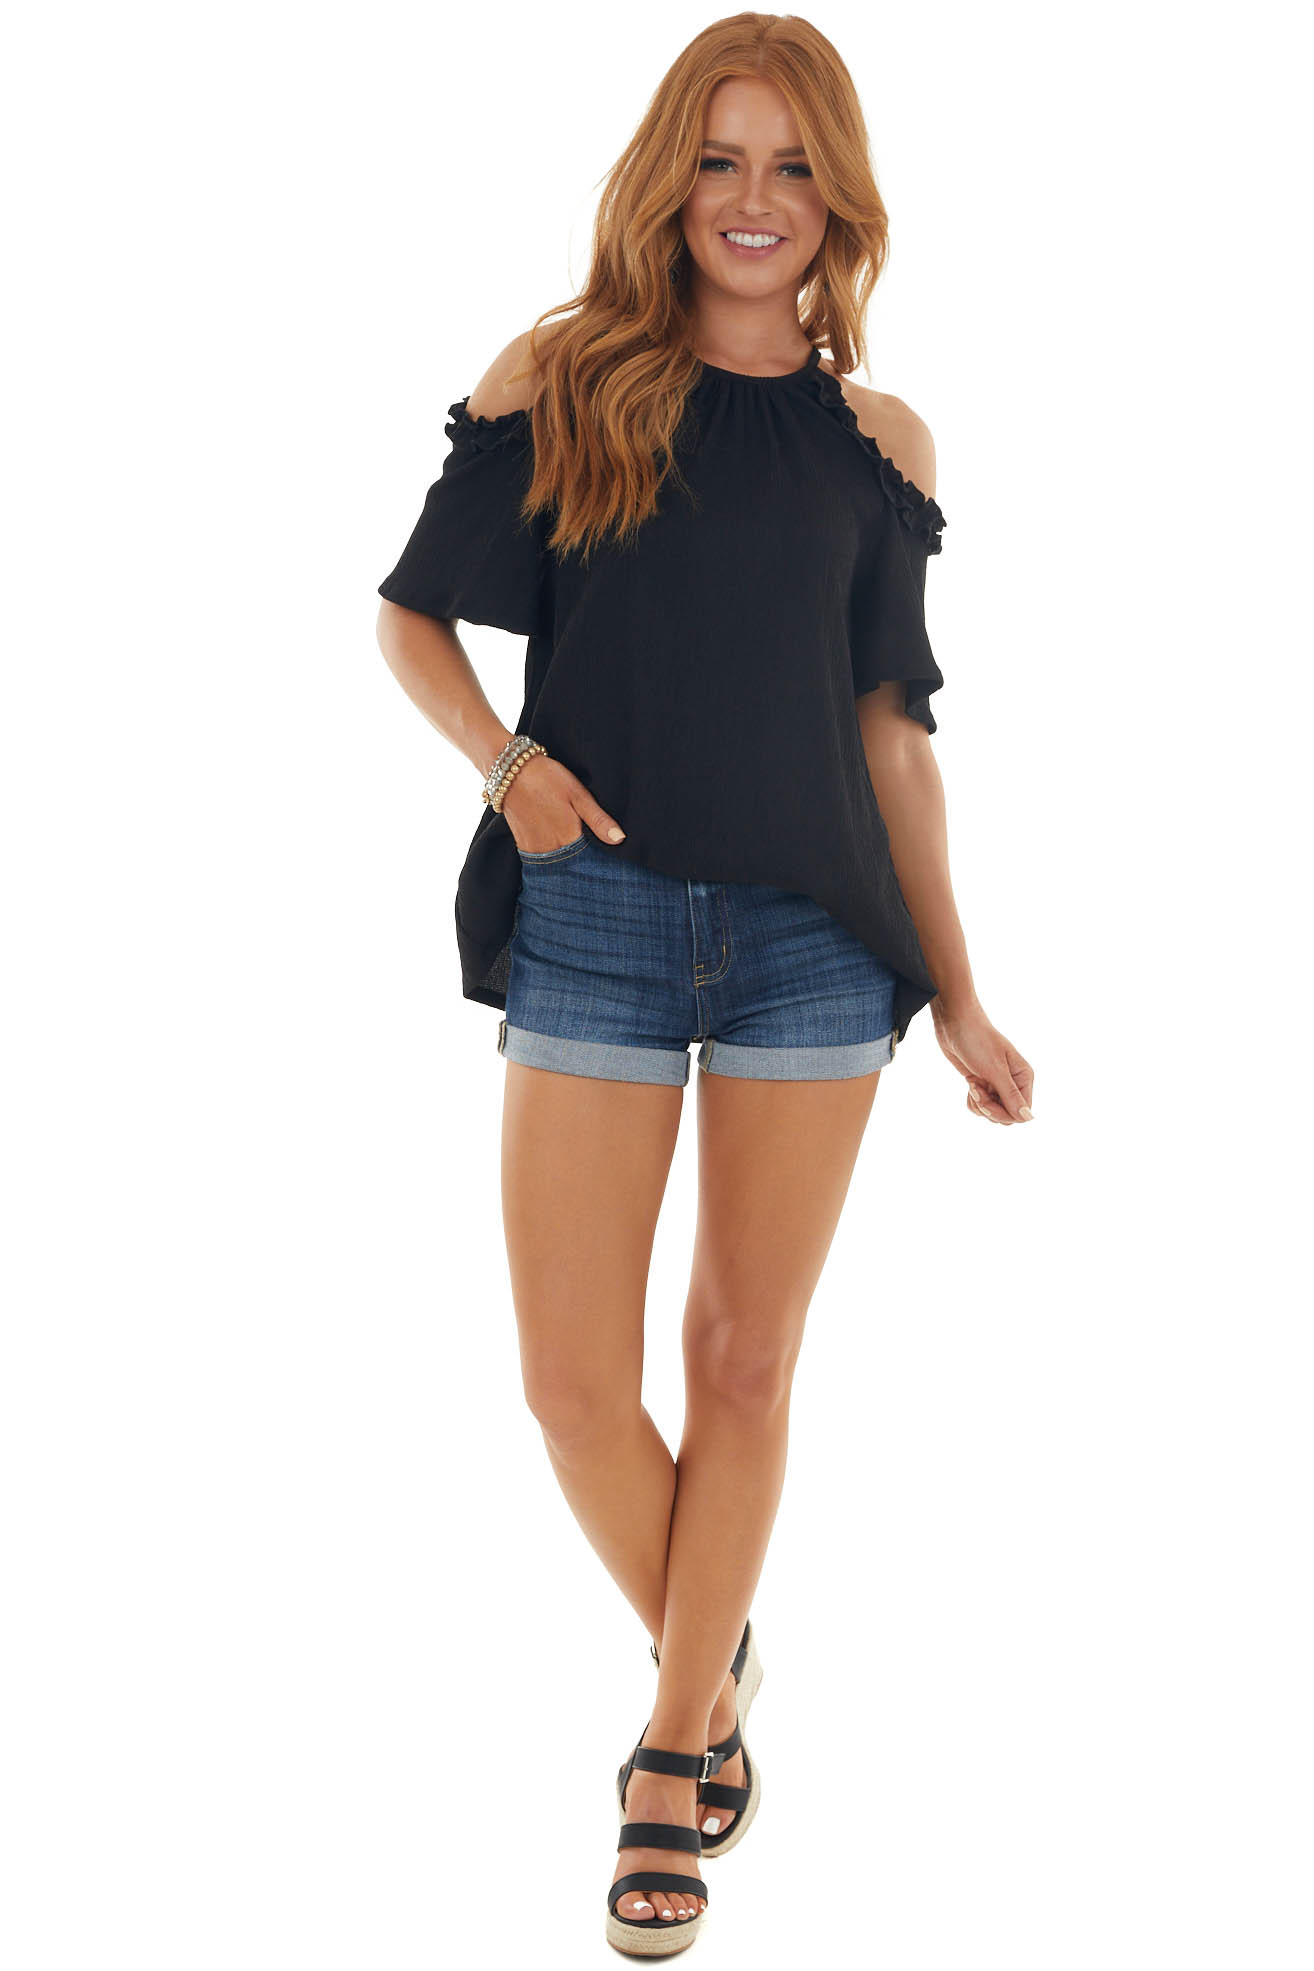 Black Cold Shoulder Top with Ruffle Details